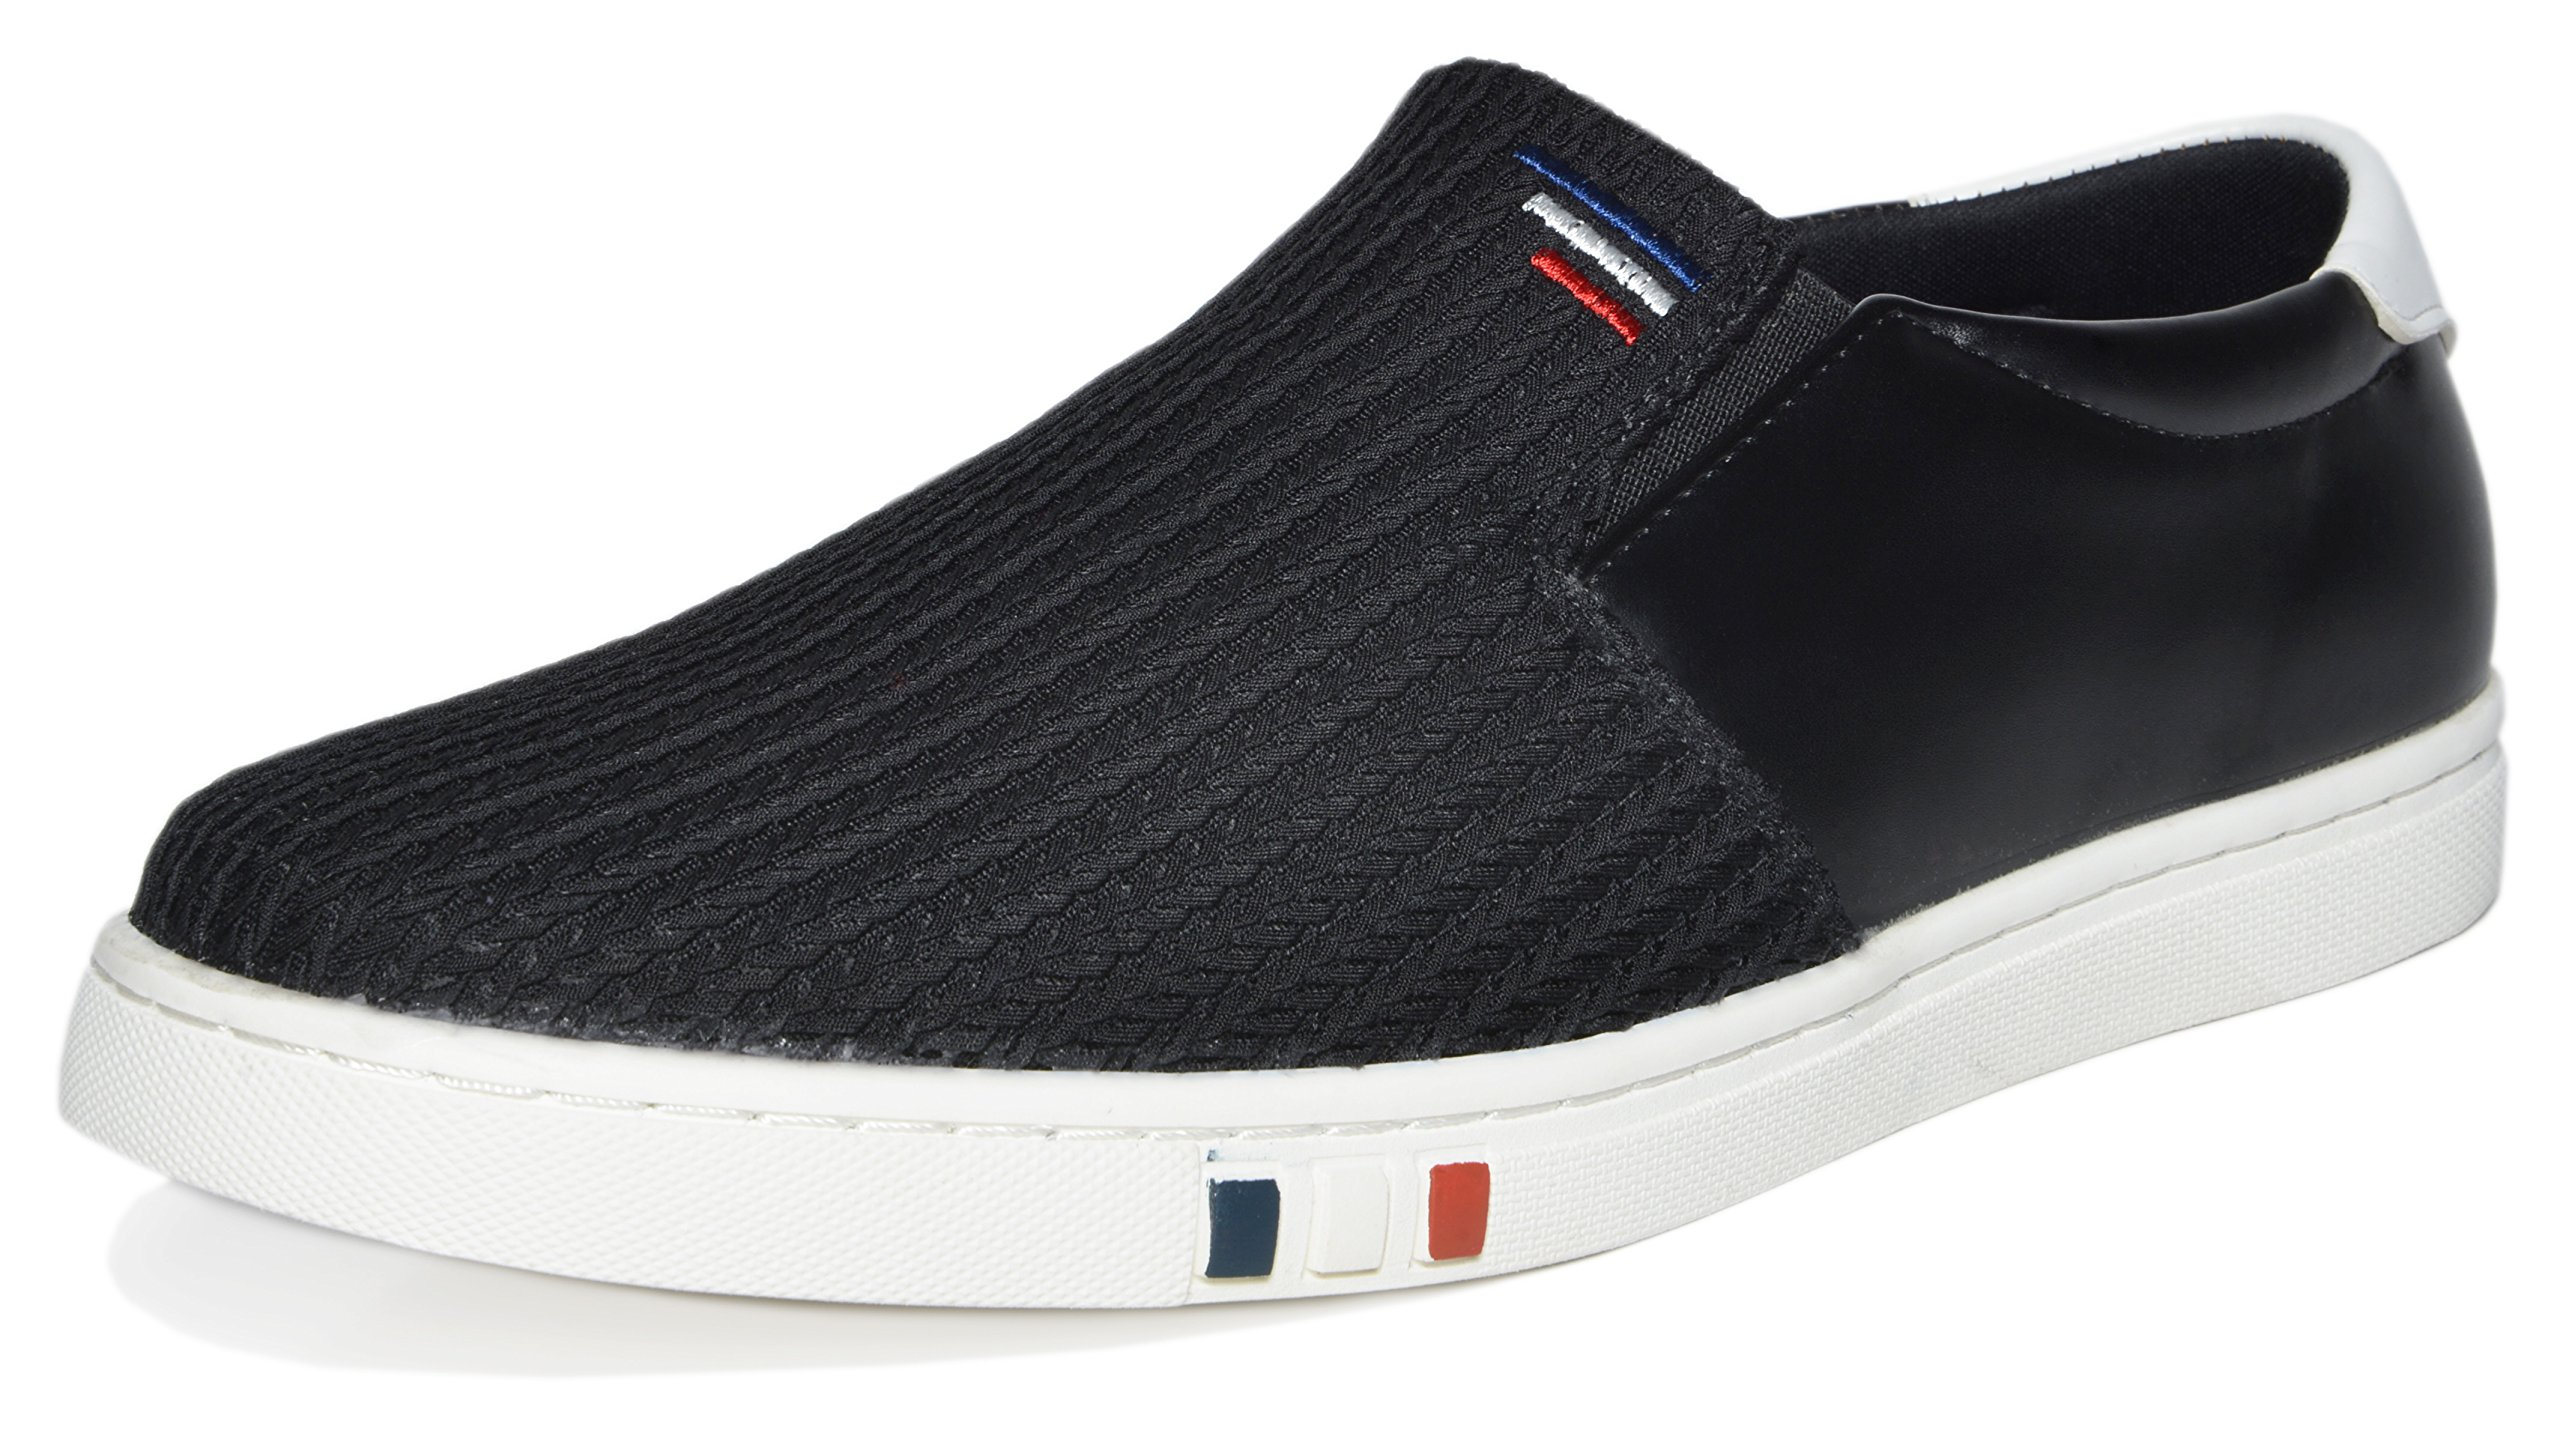 BRUNO MARC NEW YORK Men's NY-02 Black Penny Loafers Fashion Sneakers Size 11 M US